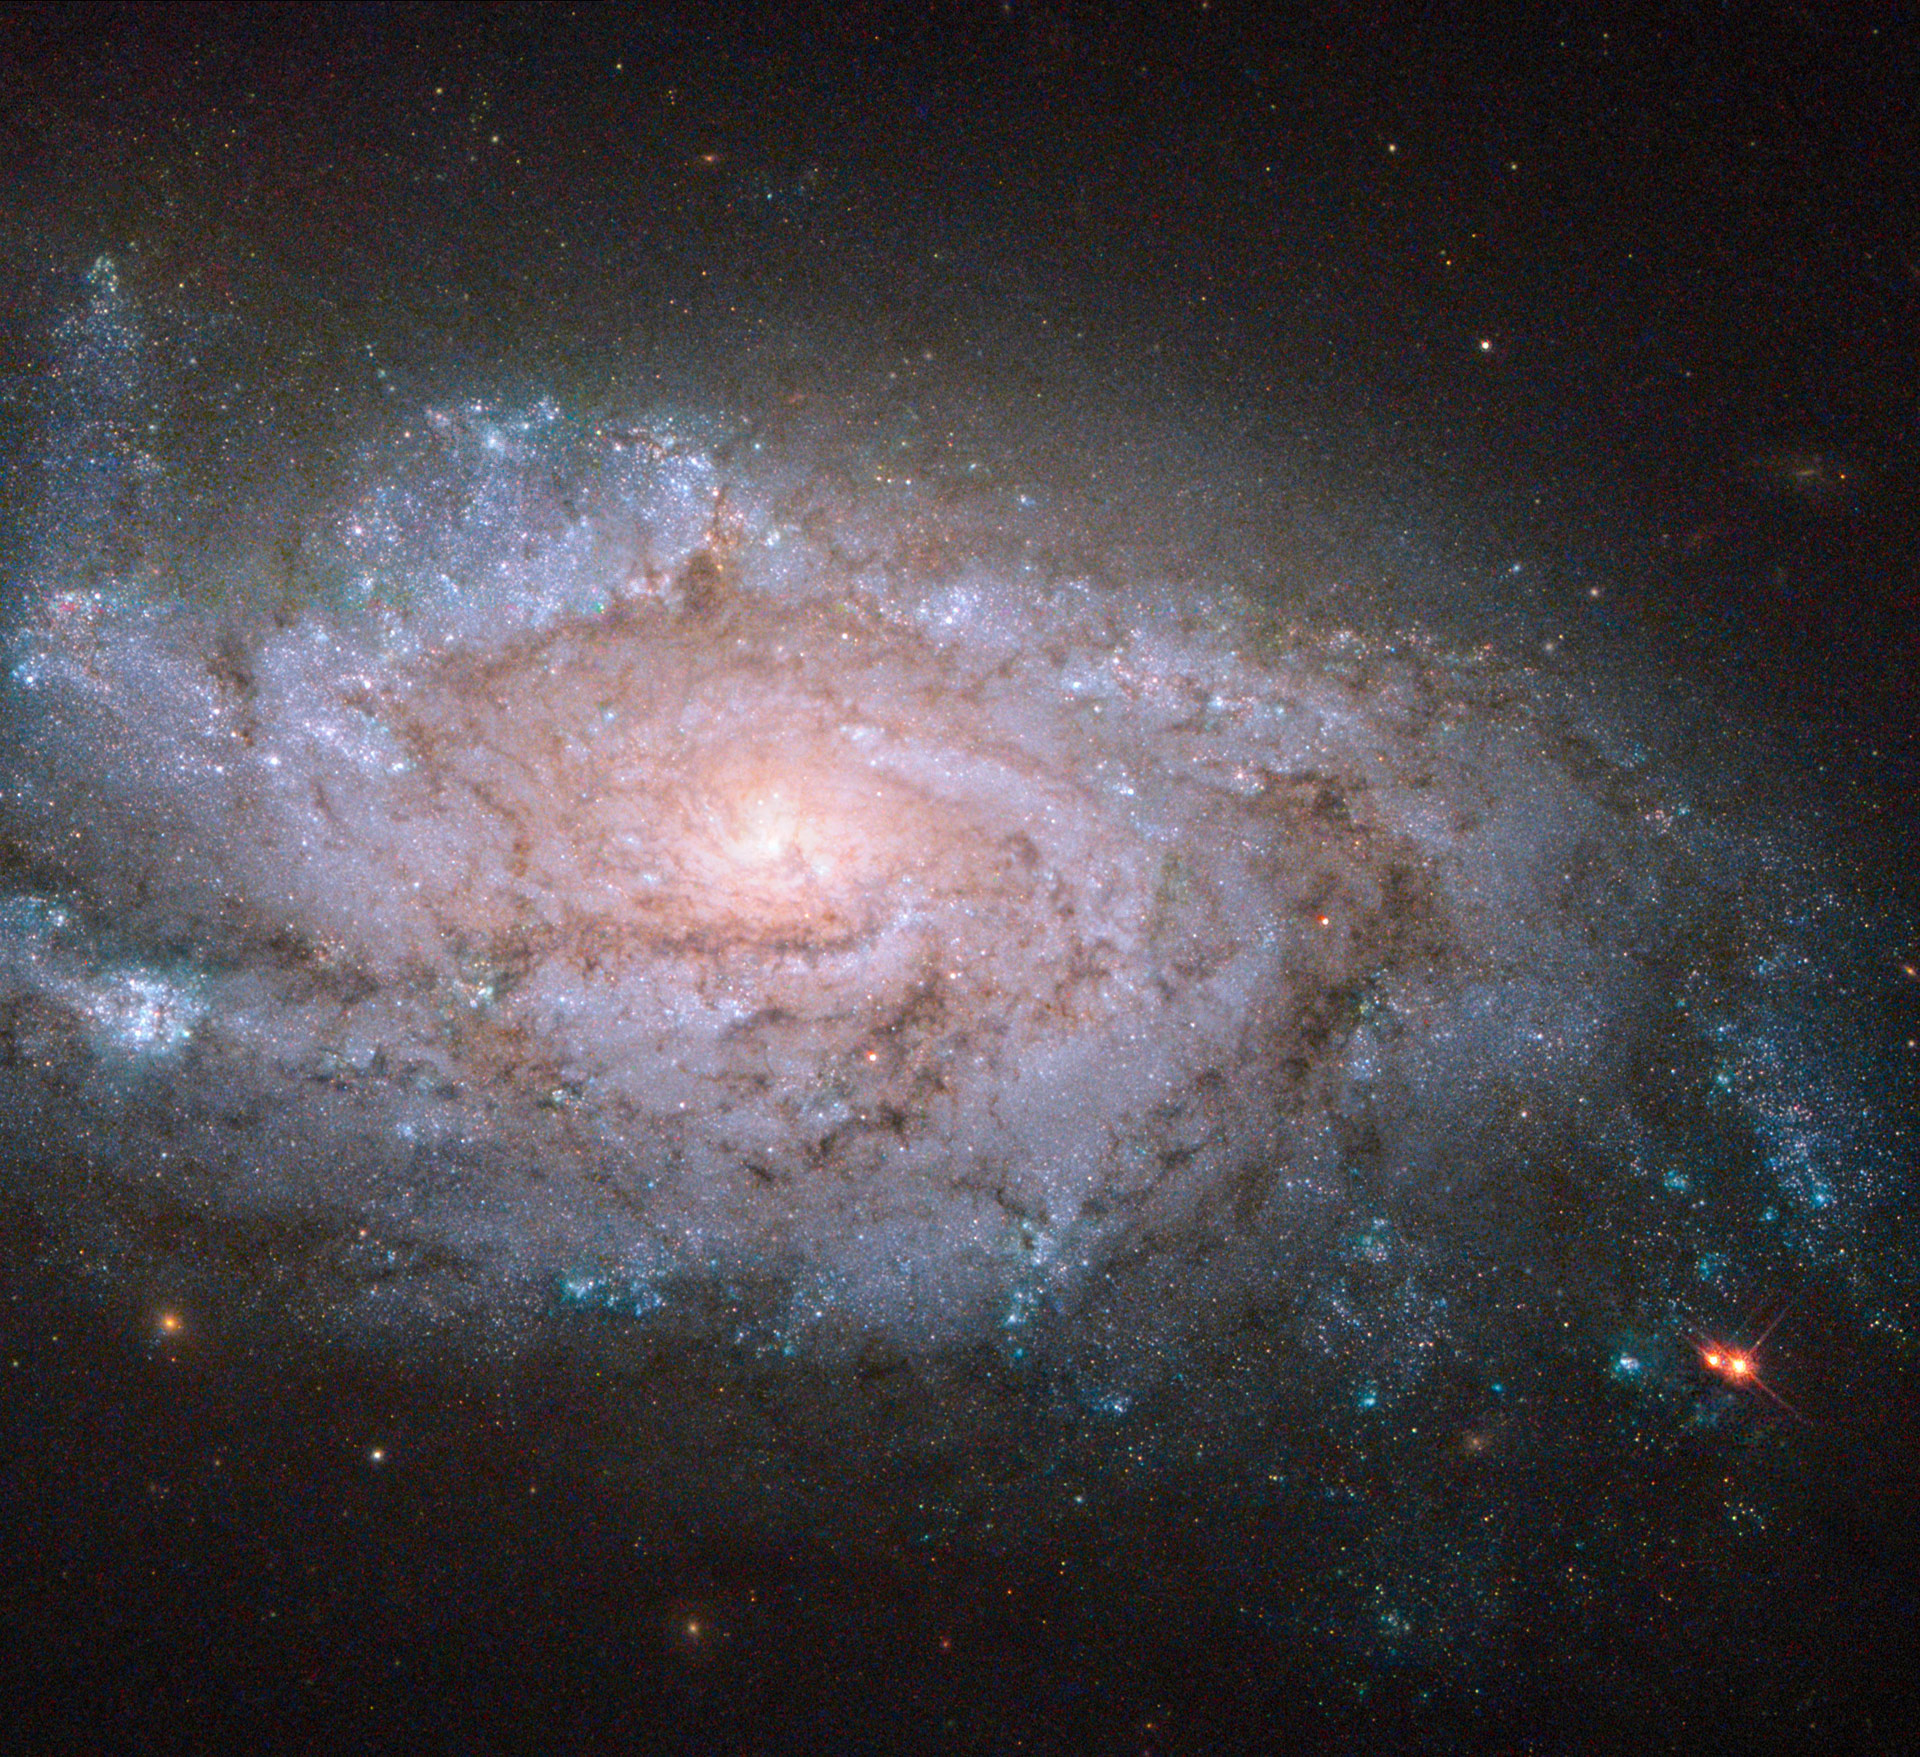 Hubble Views Spiral Galaxy NGC 1084